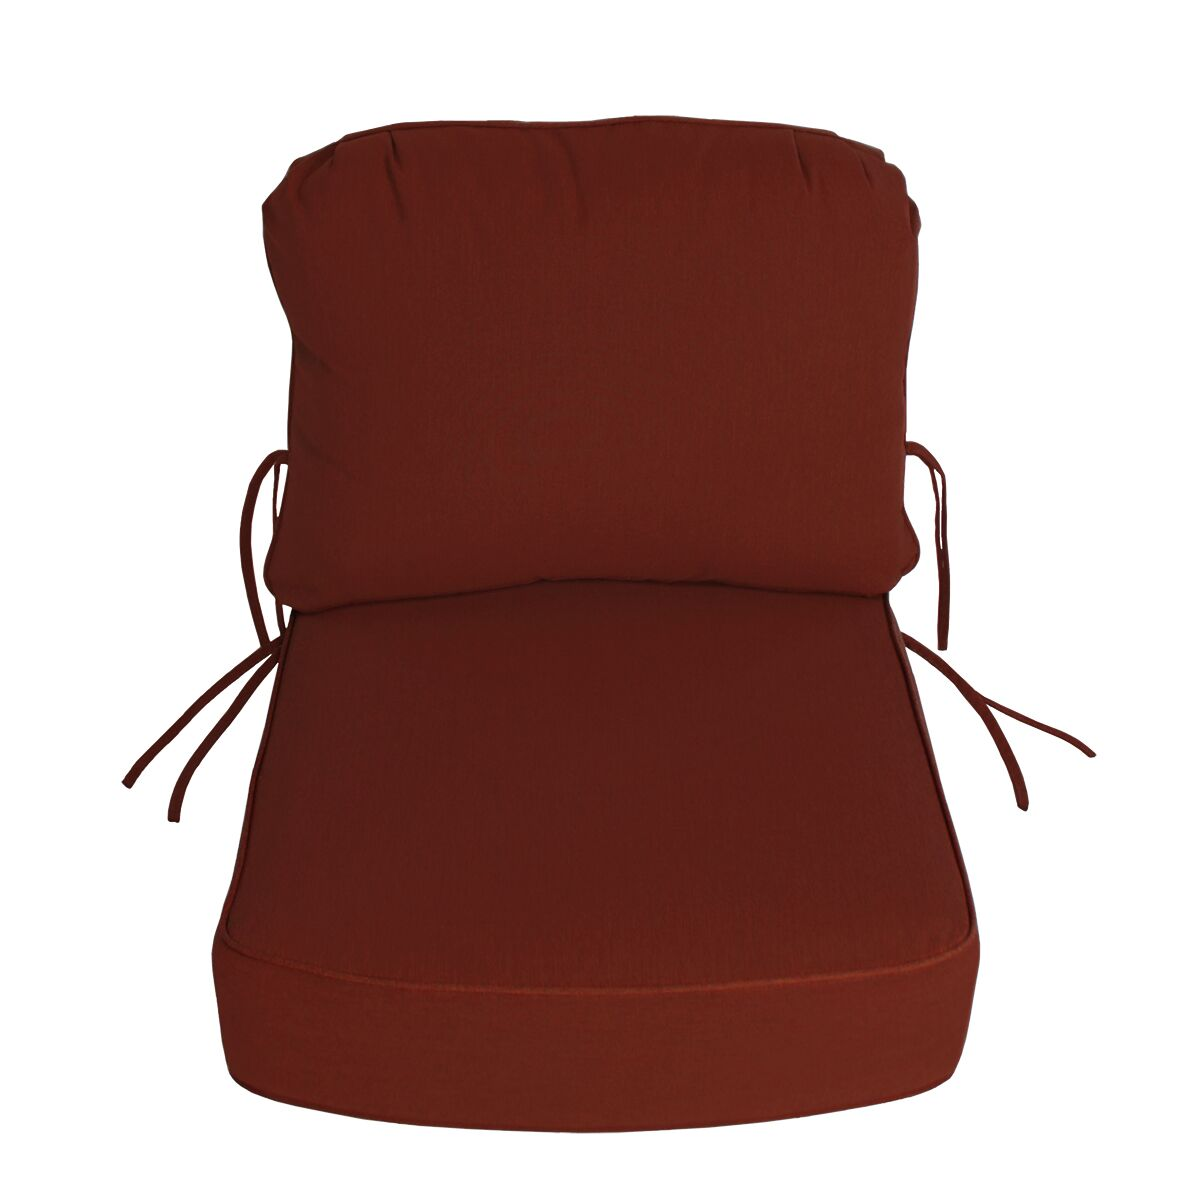 Indoor/Outdoor Sunbrella Deep Setting Chair Cushion Fabric: Terracotta